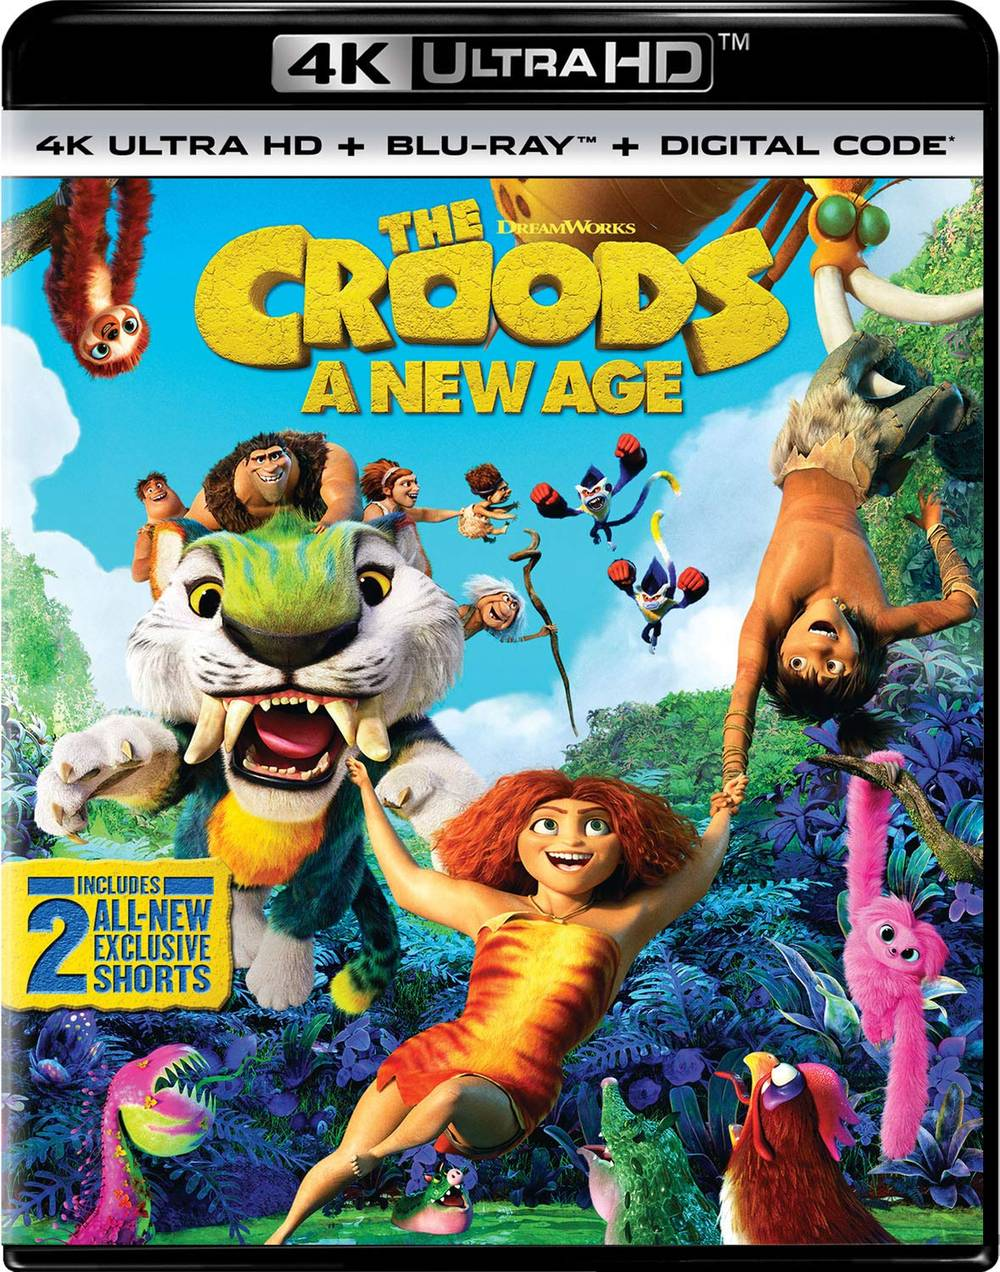 The Croods [Movie] - The Croods: A New Age (4k Ultra HD + Blu-ray + Digital Code)